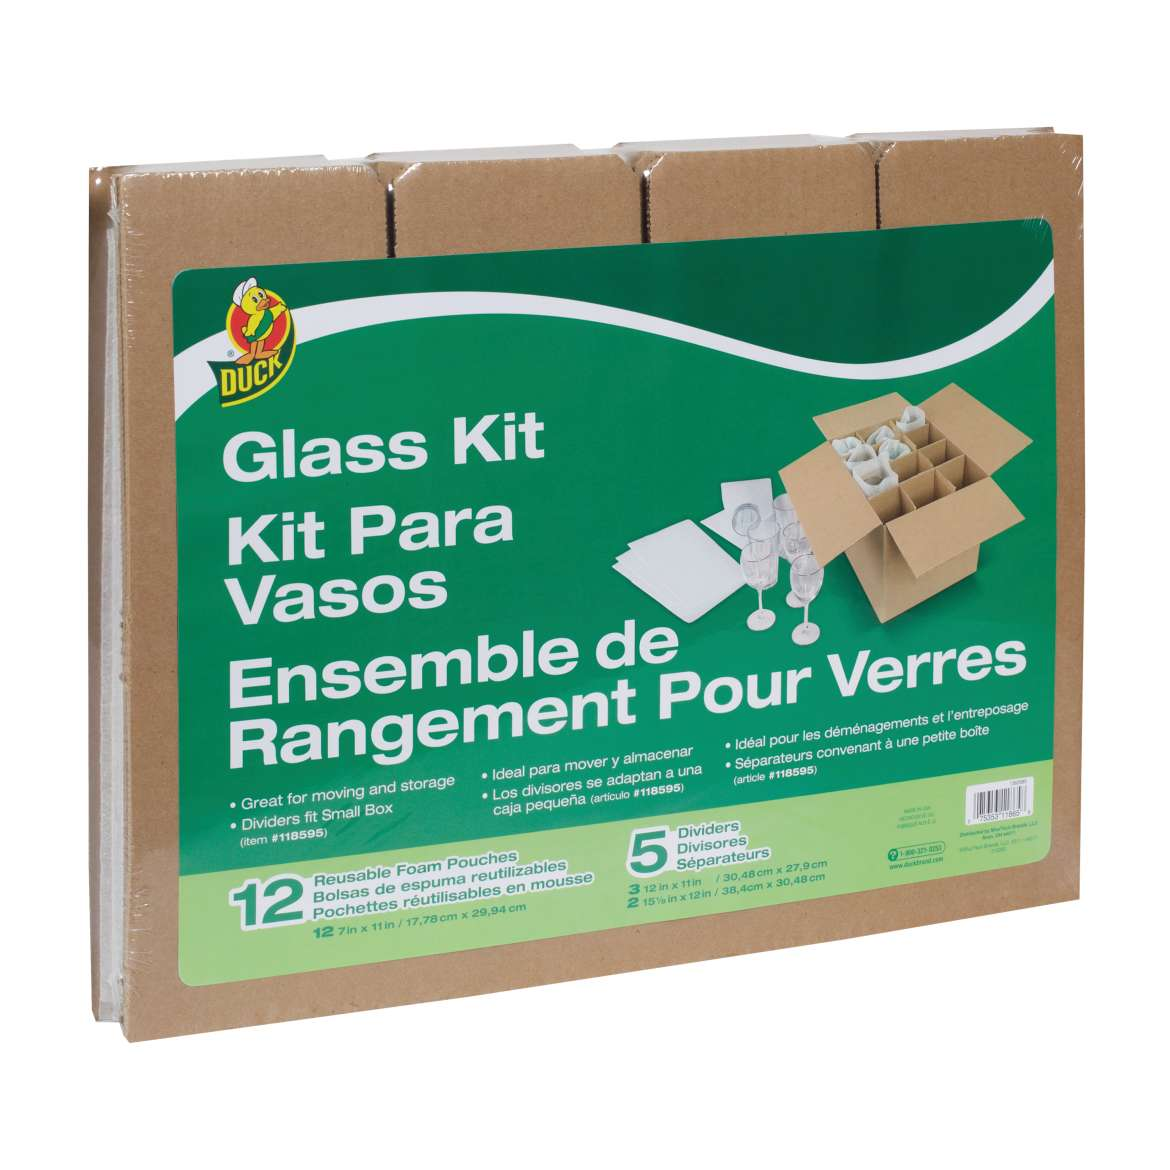 Duck® Brand Glass Kit, 5 Corrugate Dividers & 12 Foam Pouches (Box Not Included) Image